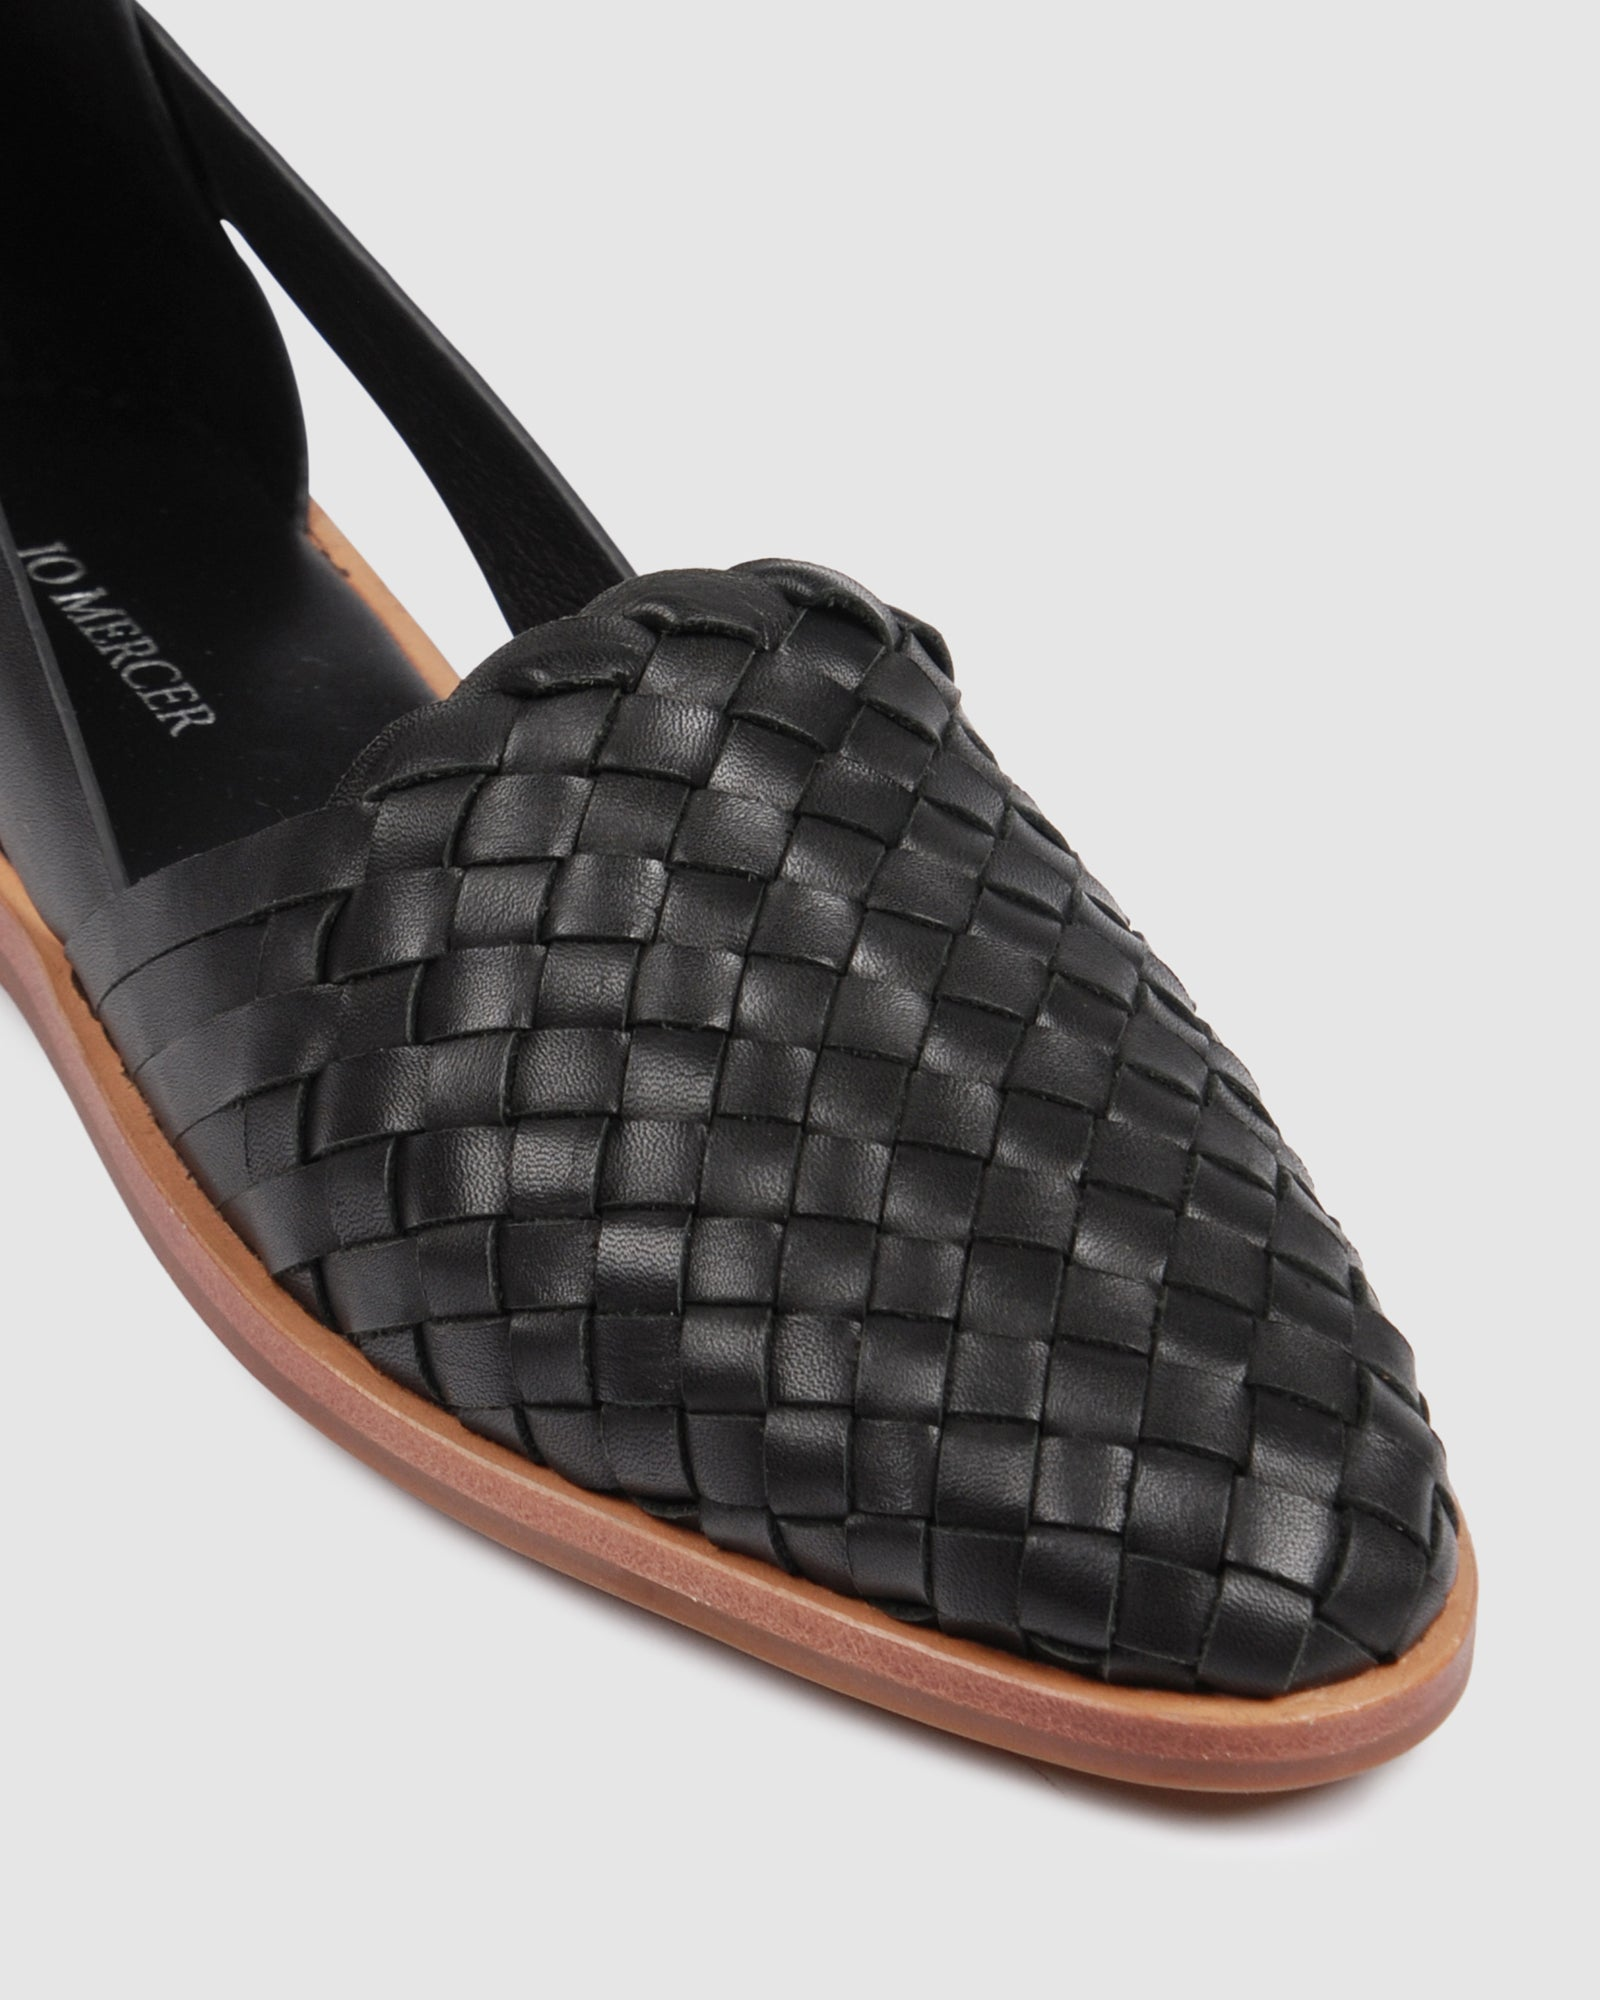 WISDOM CASUAL FLATS BLACK LEATHER